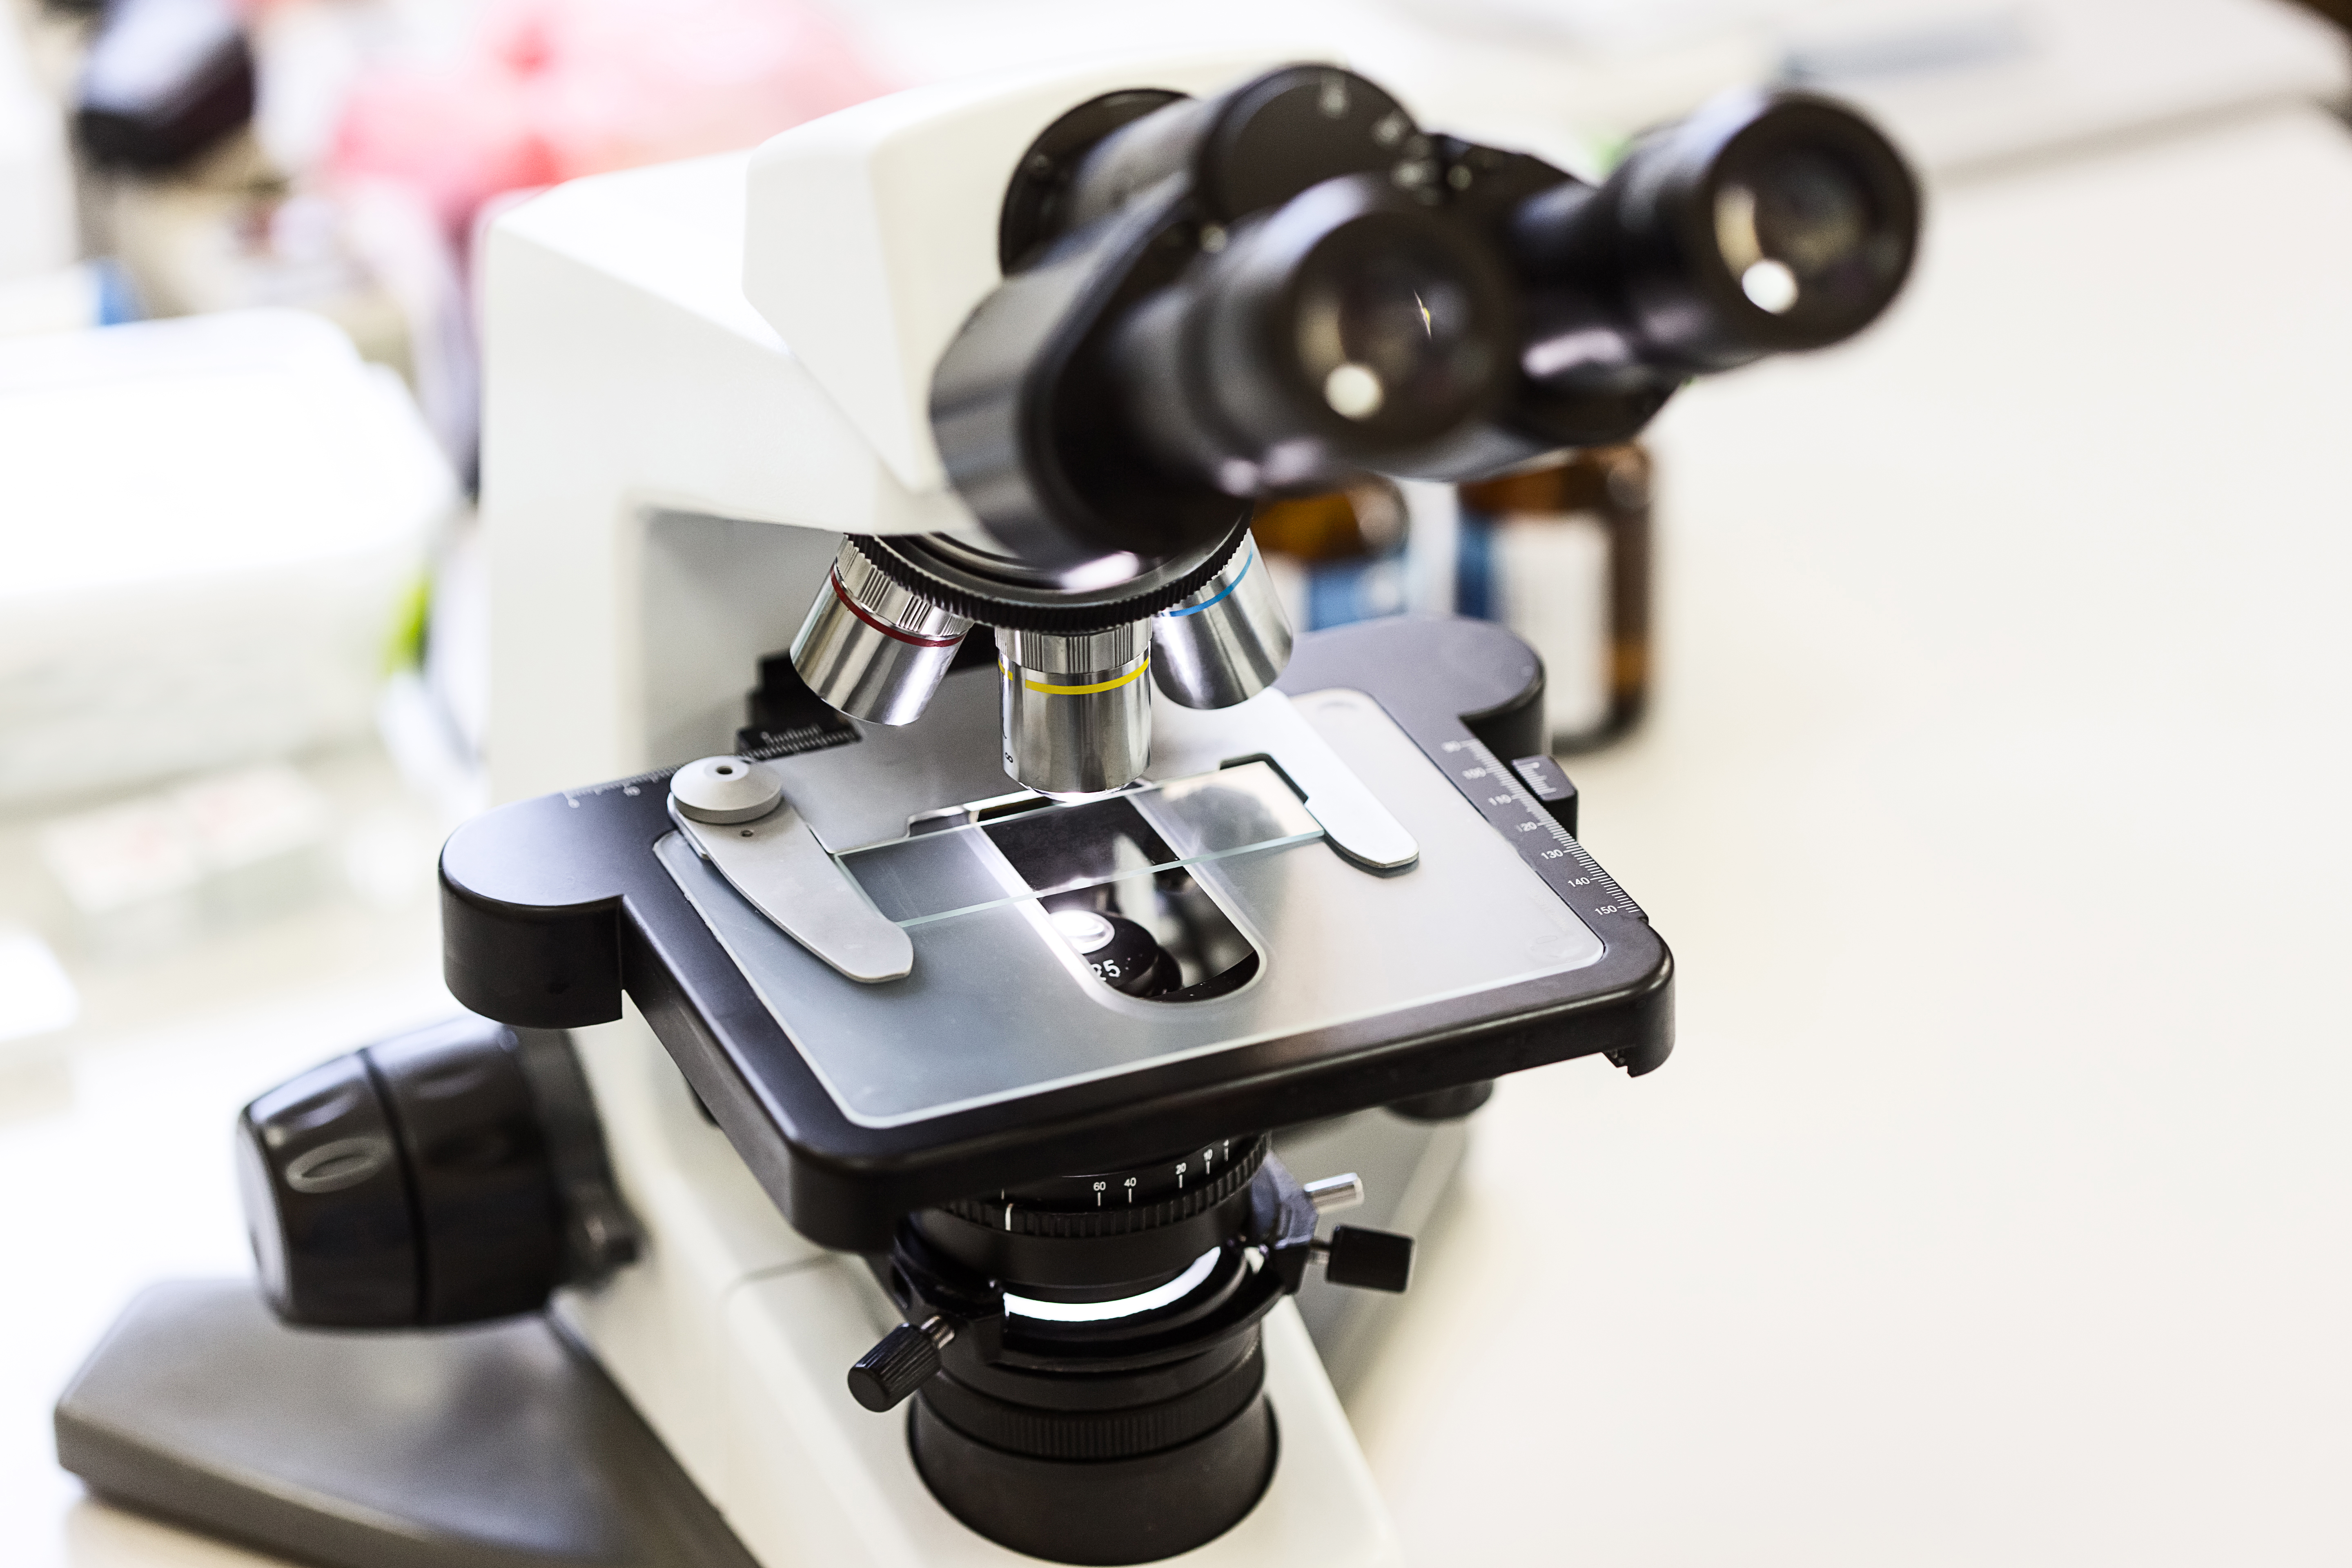 What Is Magnification on a Microscope?